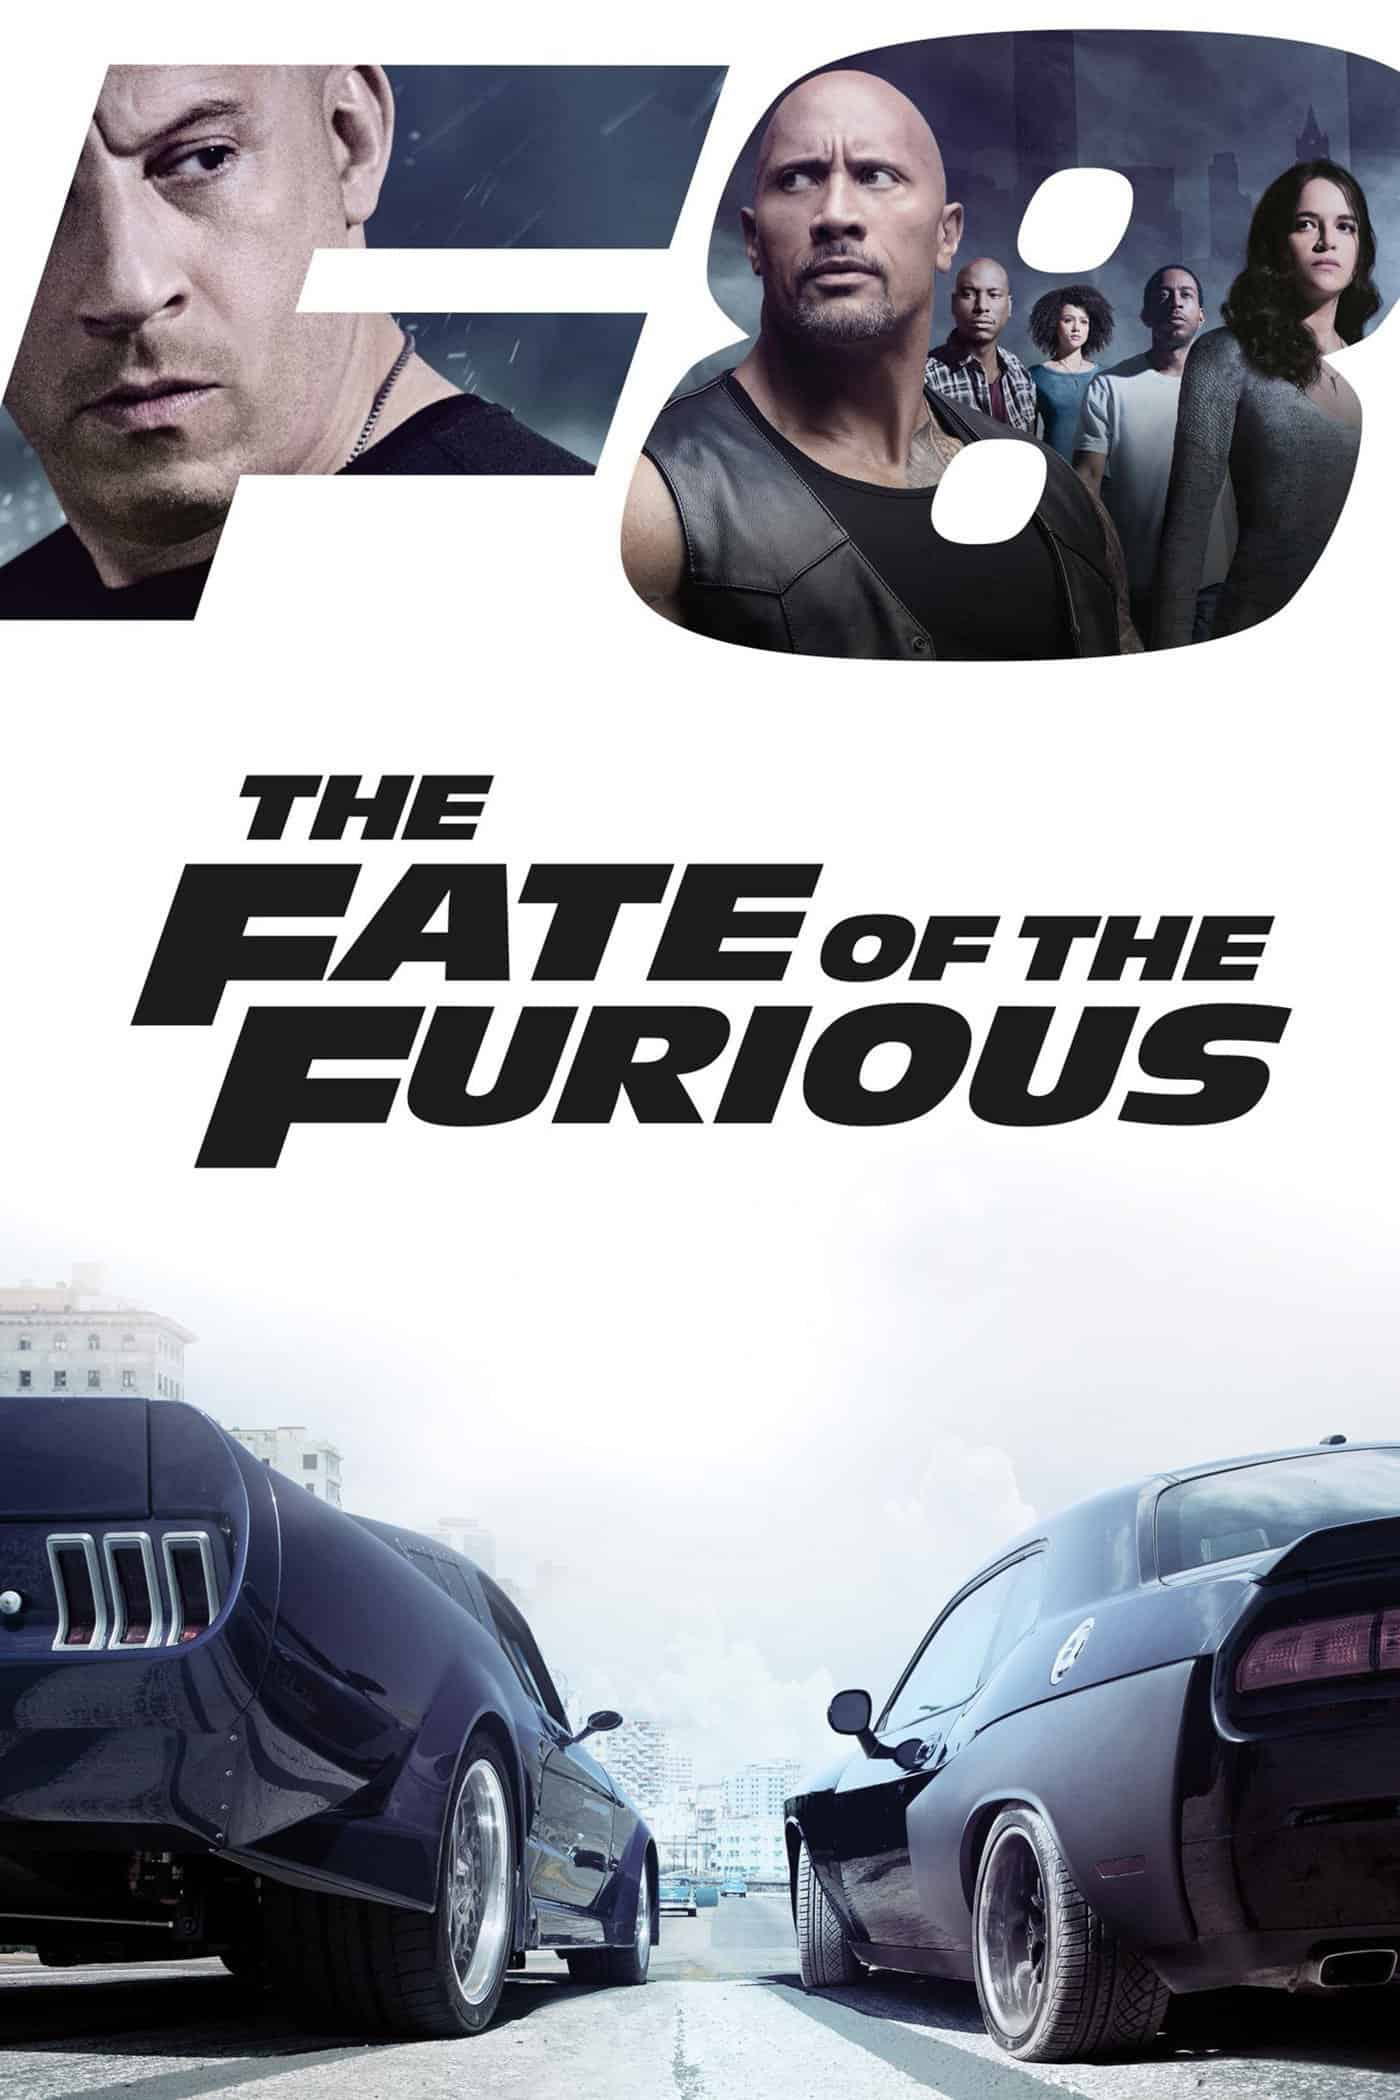 The Fate of the Furious, 2017